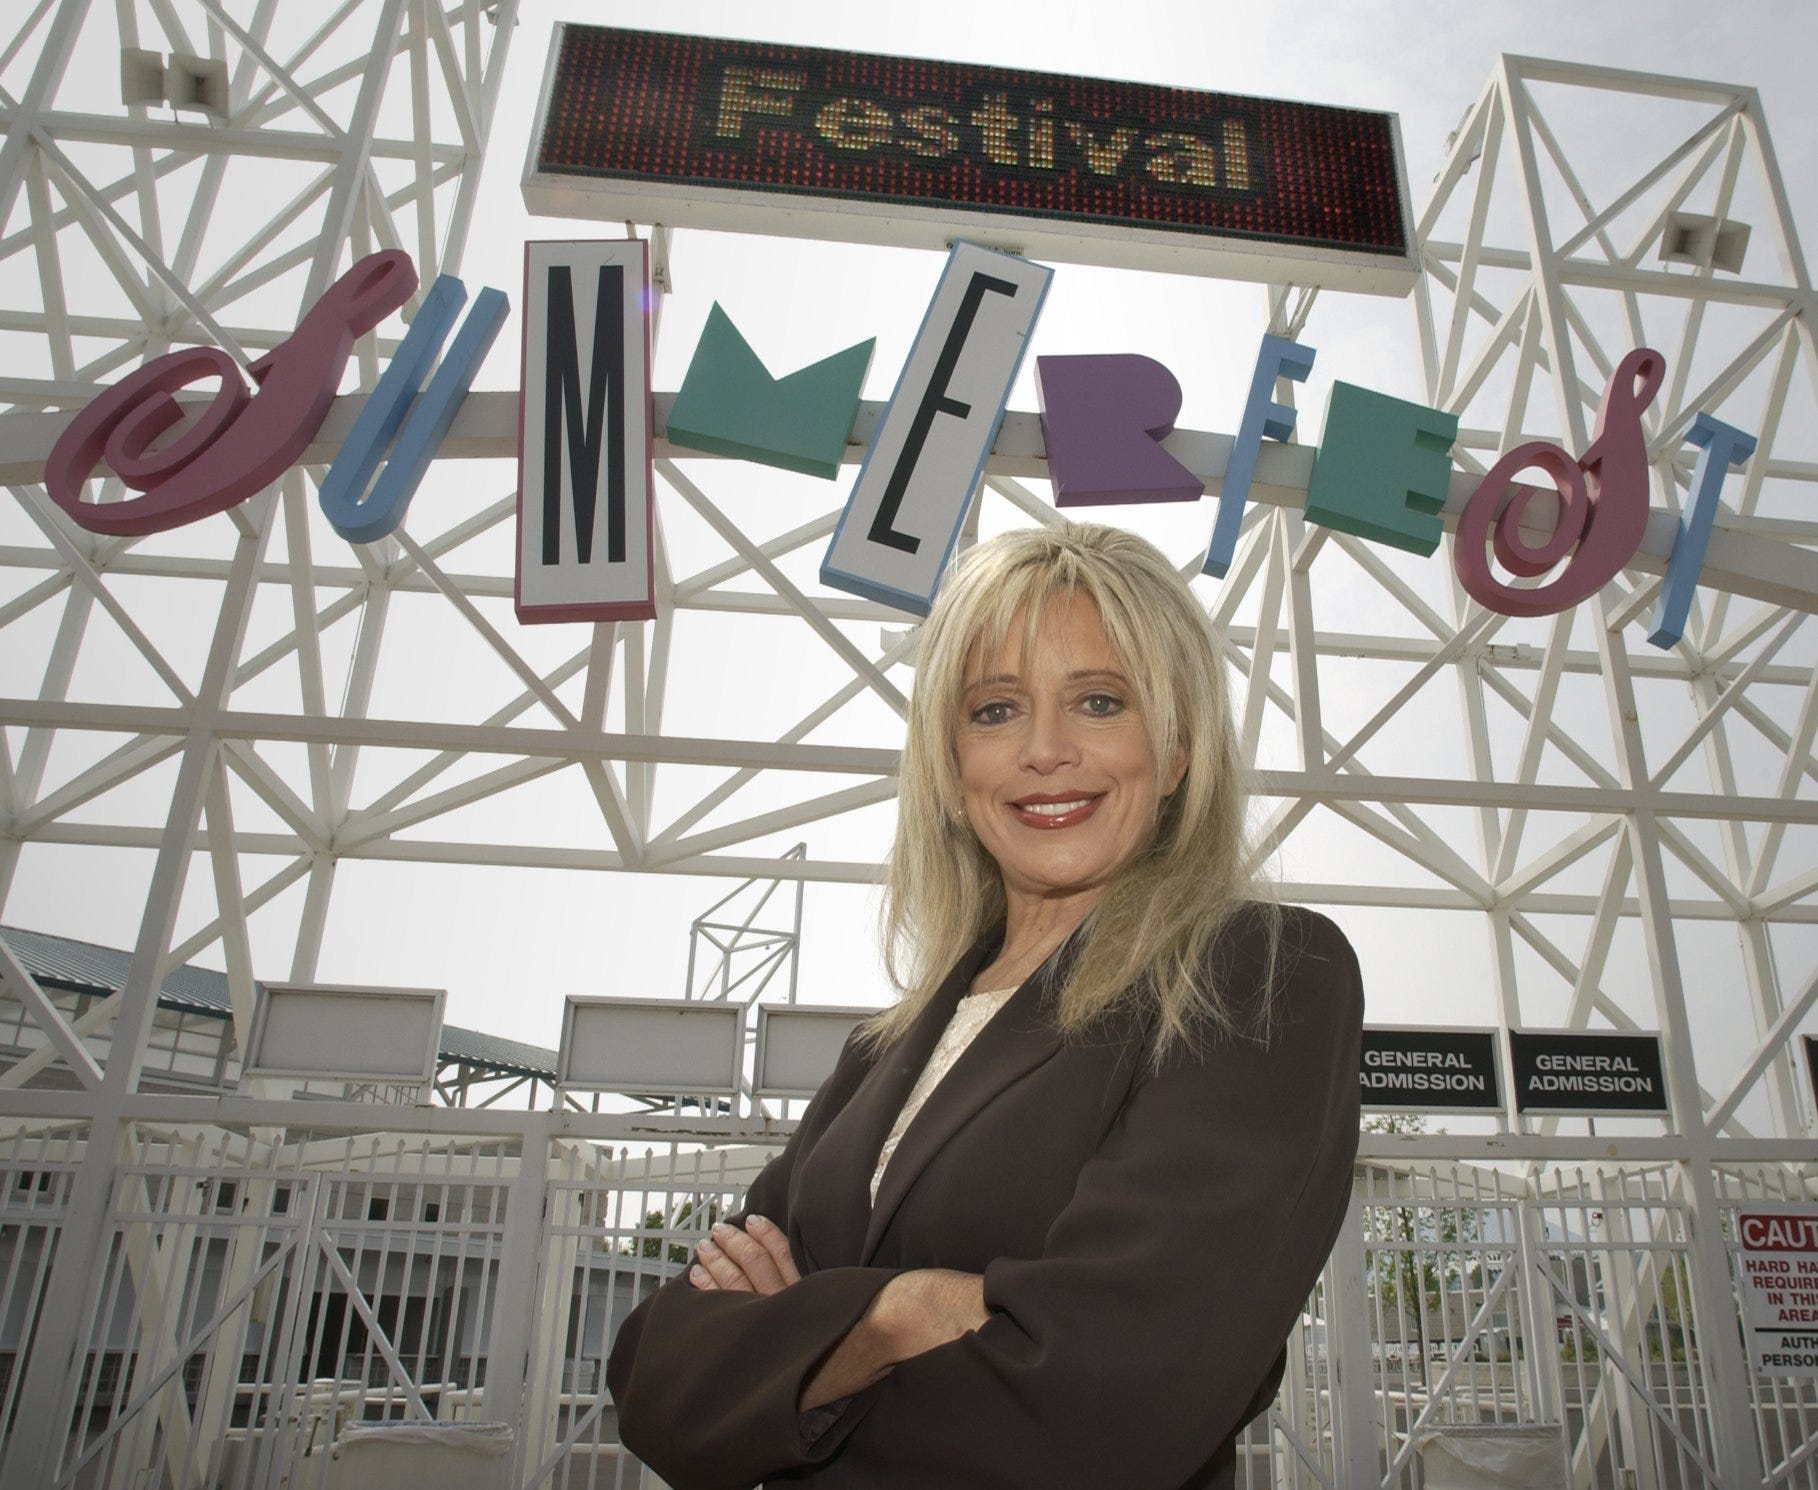 Bo Black, photographed June 13, 2003, at the north entrance of the Summerfest grounds.